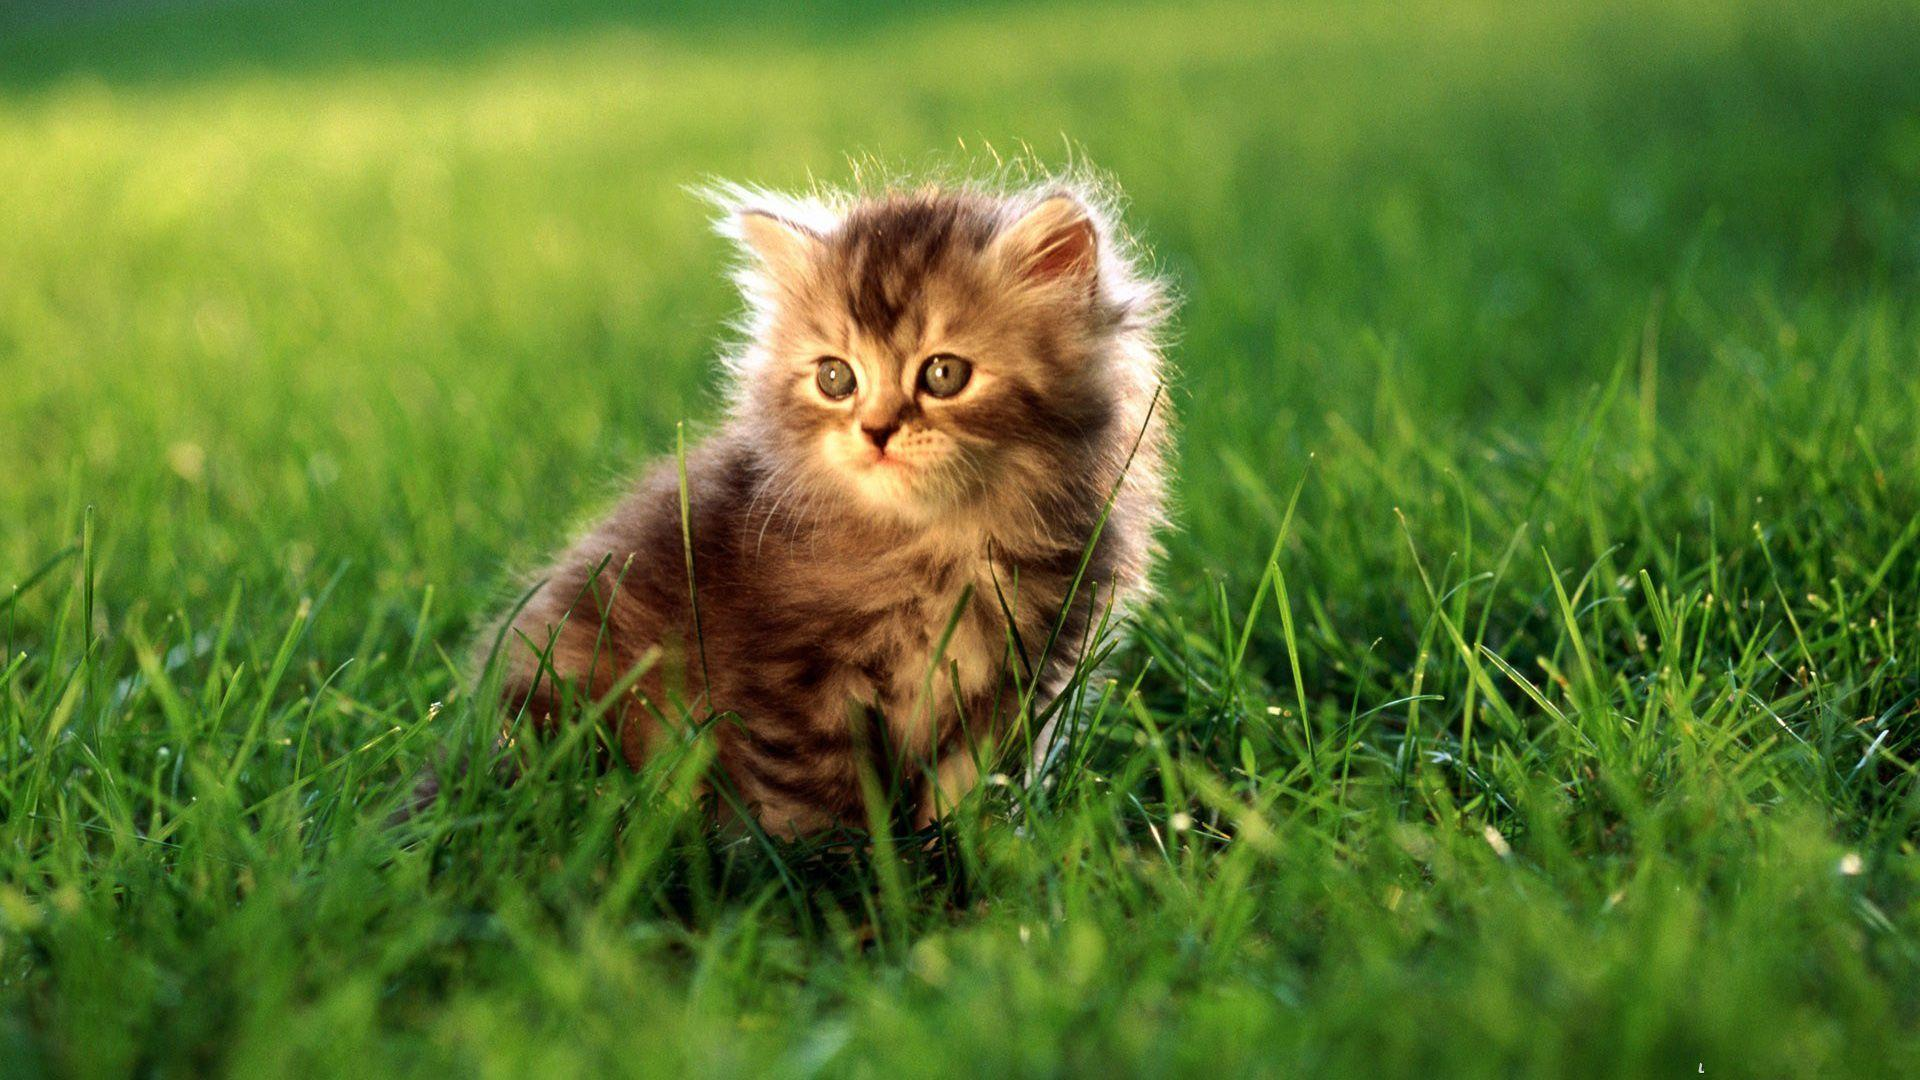 Cat Cute Animal HD Wallpapers 1920x1080